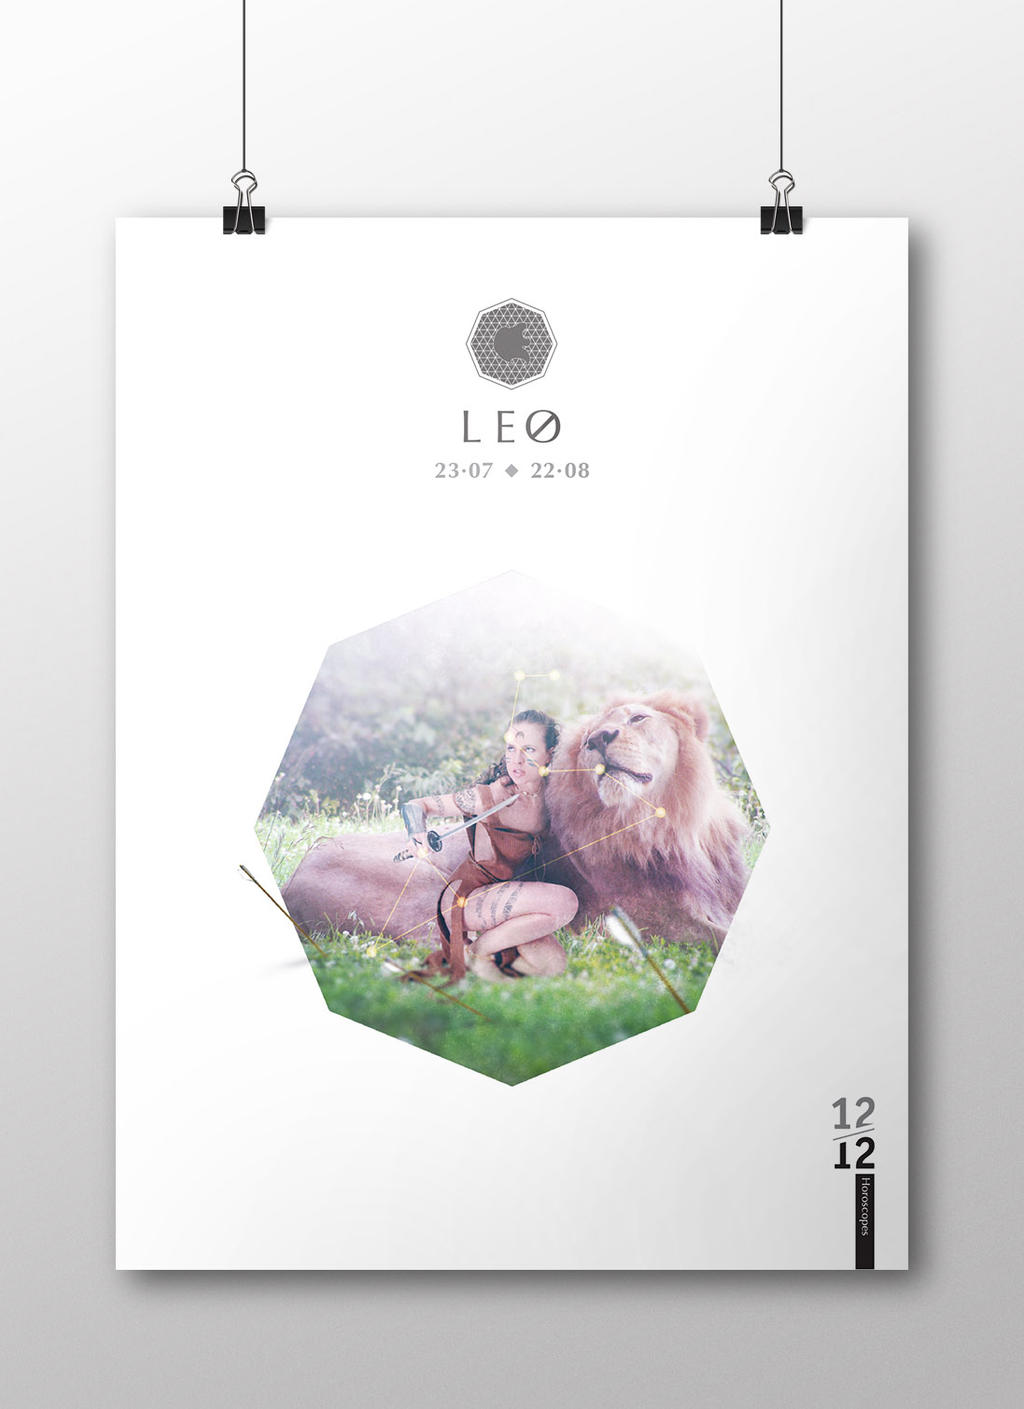 Leo by cheewengtang